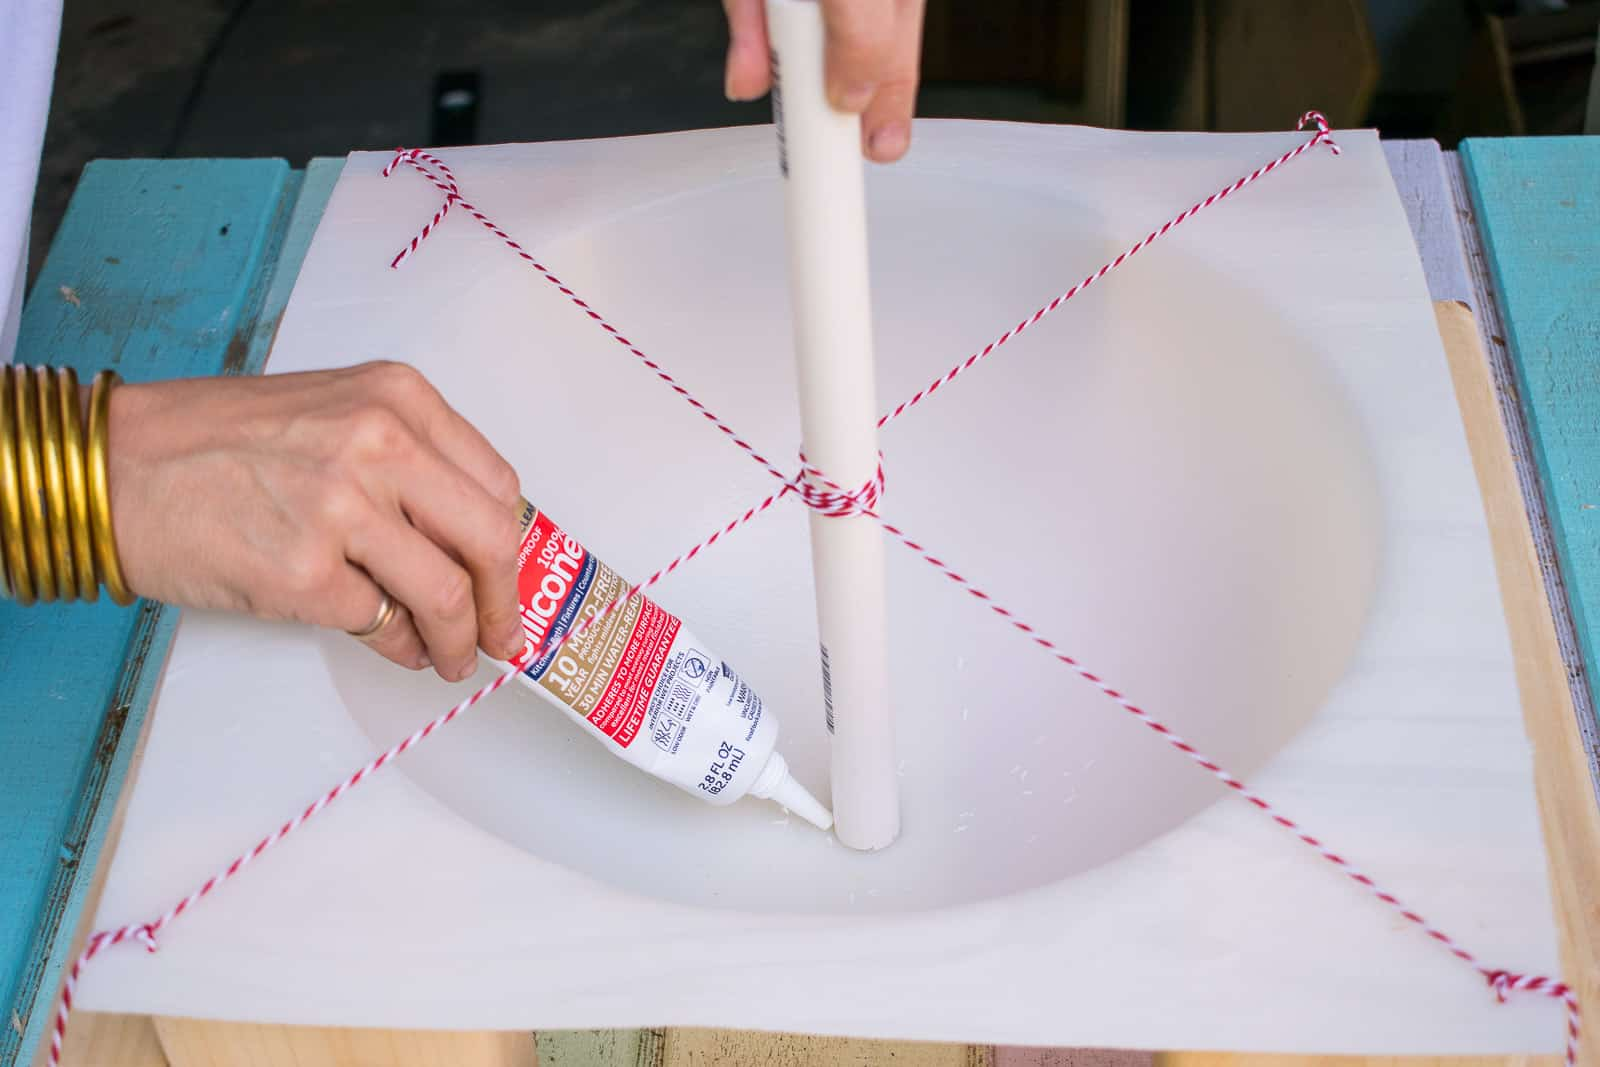 apply silicon to hold pvc pipe in place